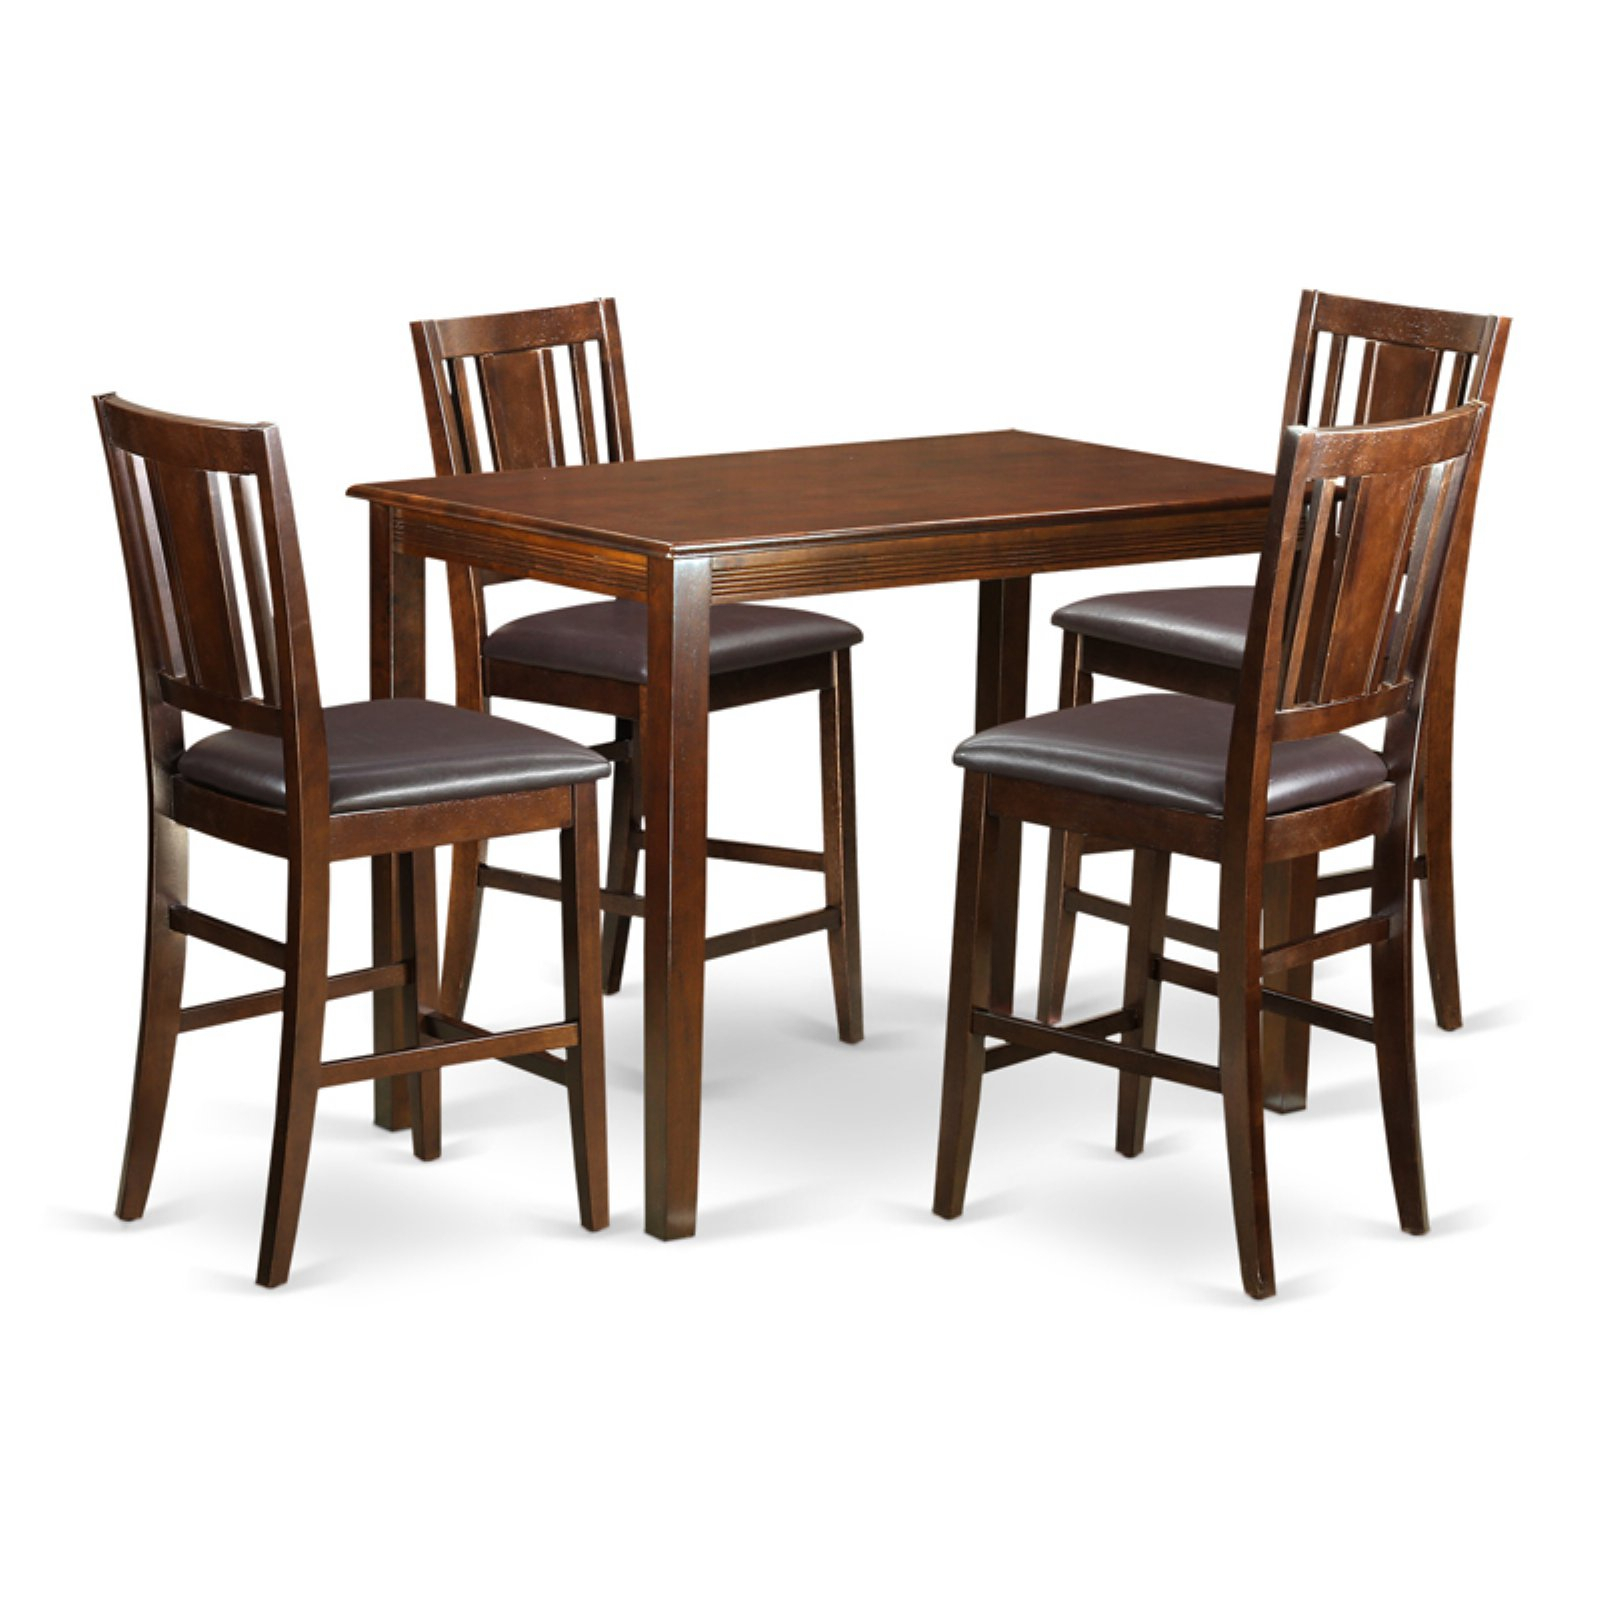 East West Furniture Yarmouth 5 Piece Scotch Art Dining Table Set In Best And Newest Sundberg 5 Piece Solid Wood Dining Sets (Image 4 of 20)